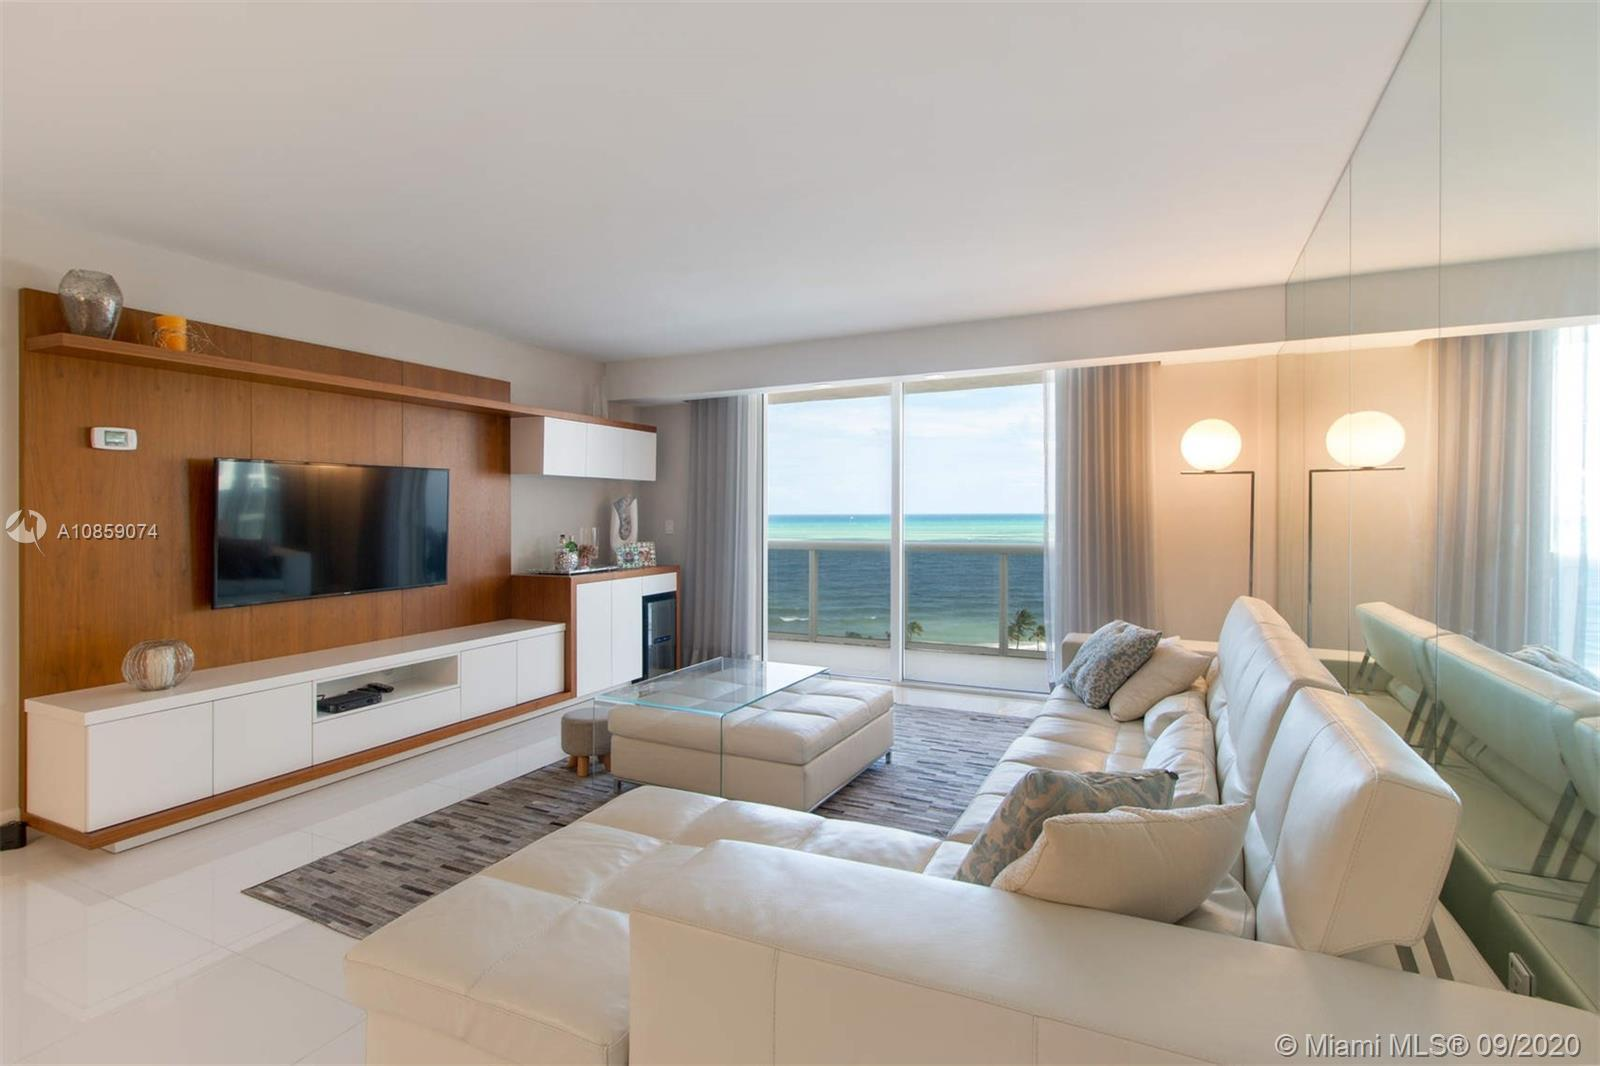 Amazing condo for sale at Harbour House steps from Bal Harbor Mall, restaurants and shops. This unit